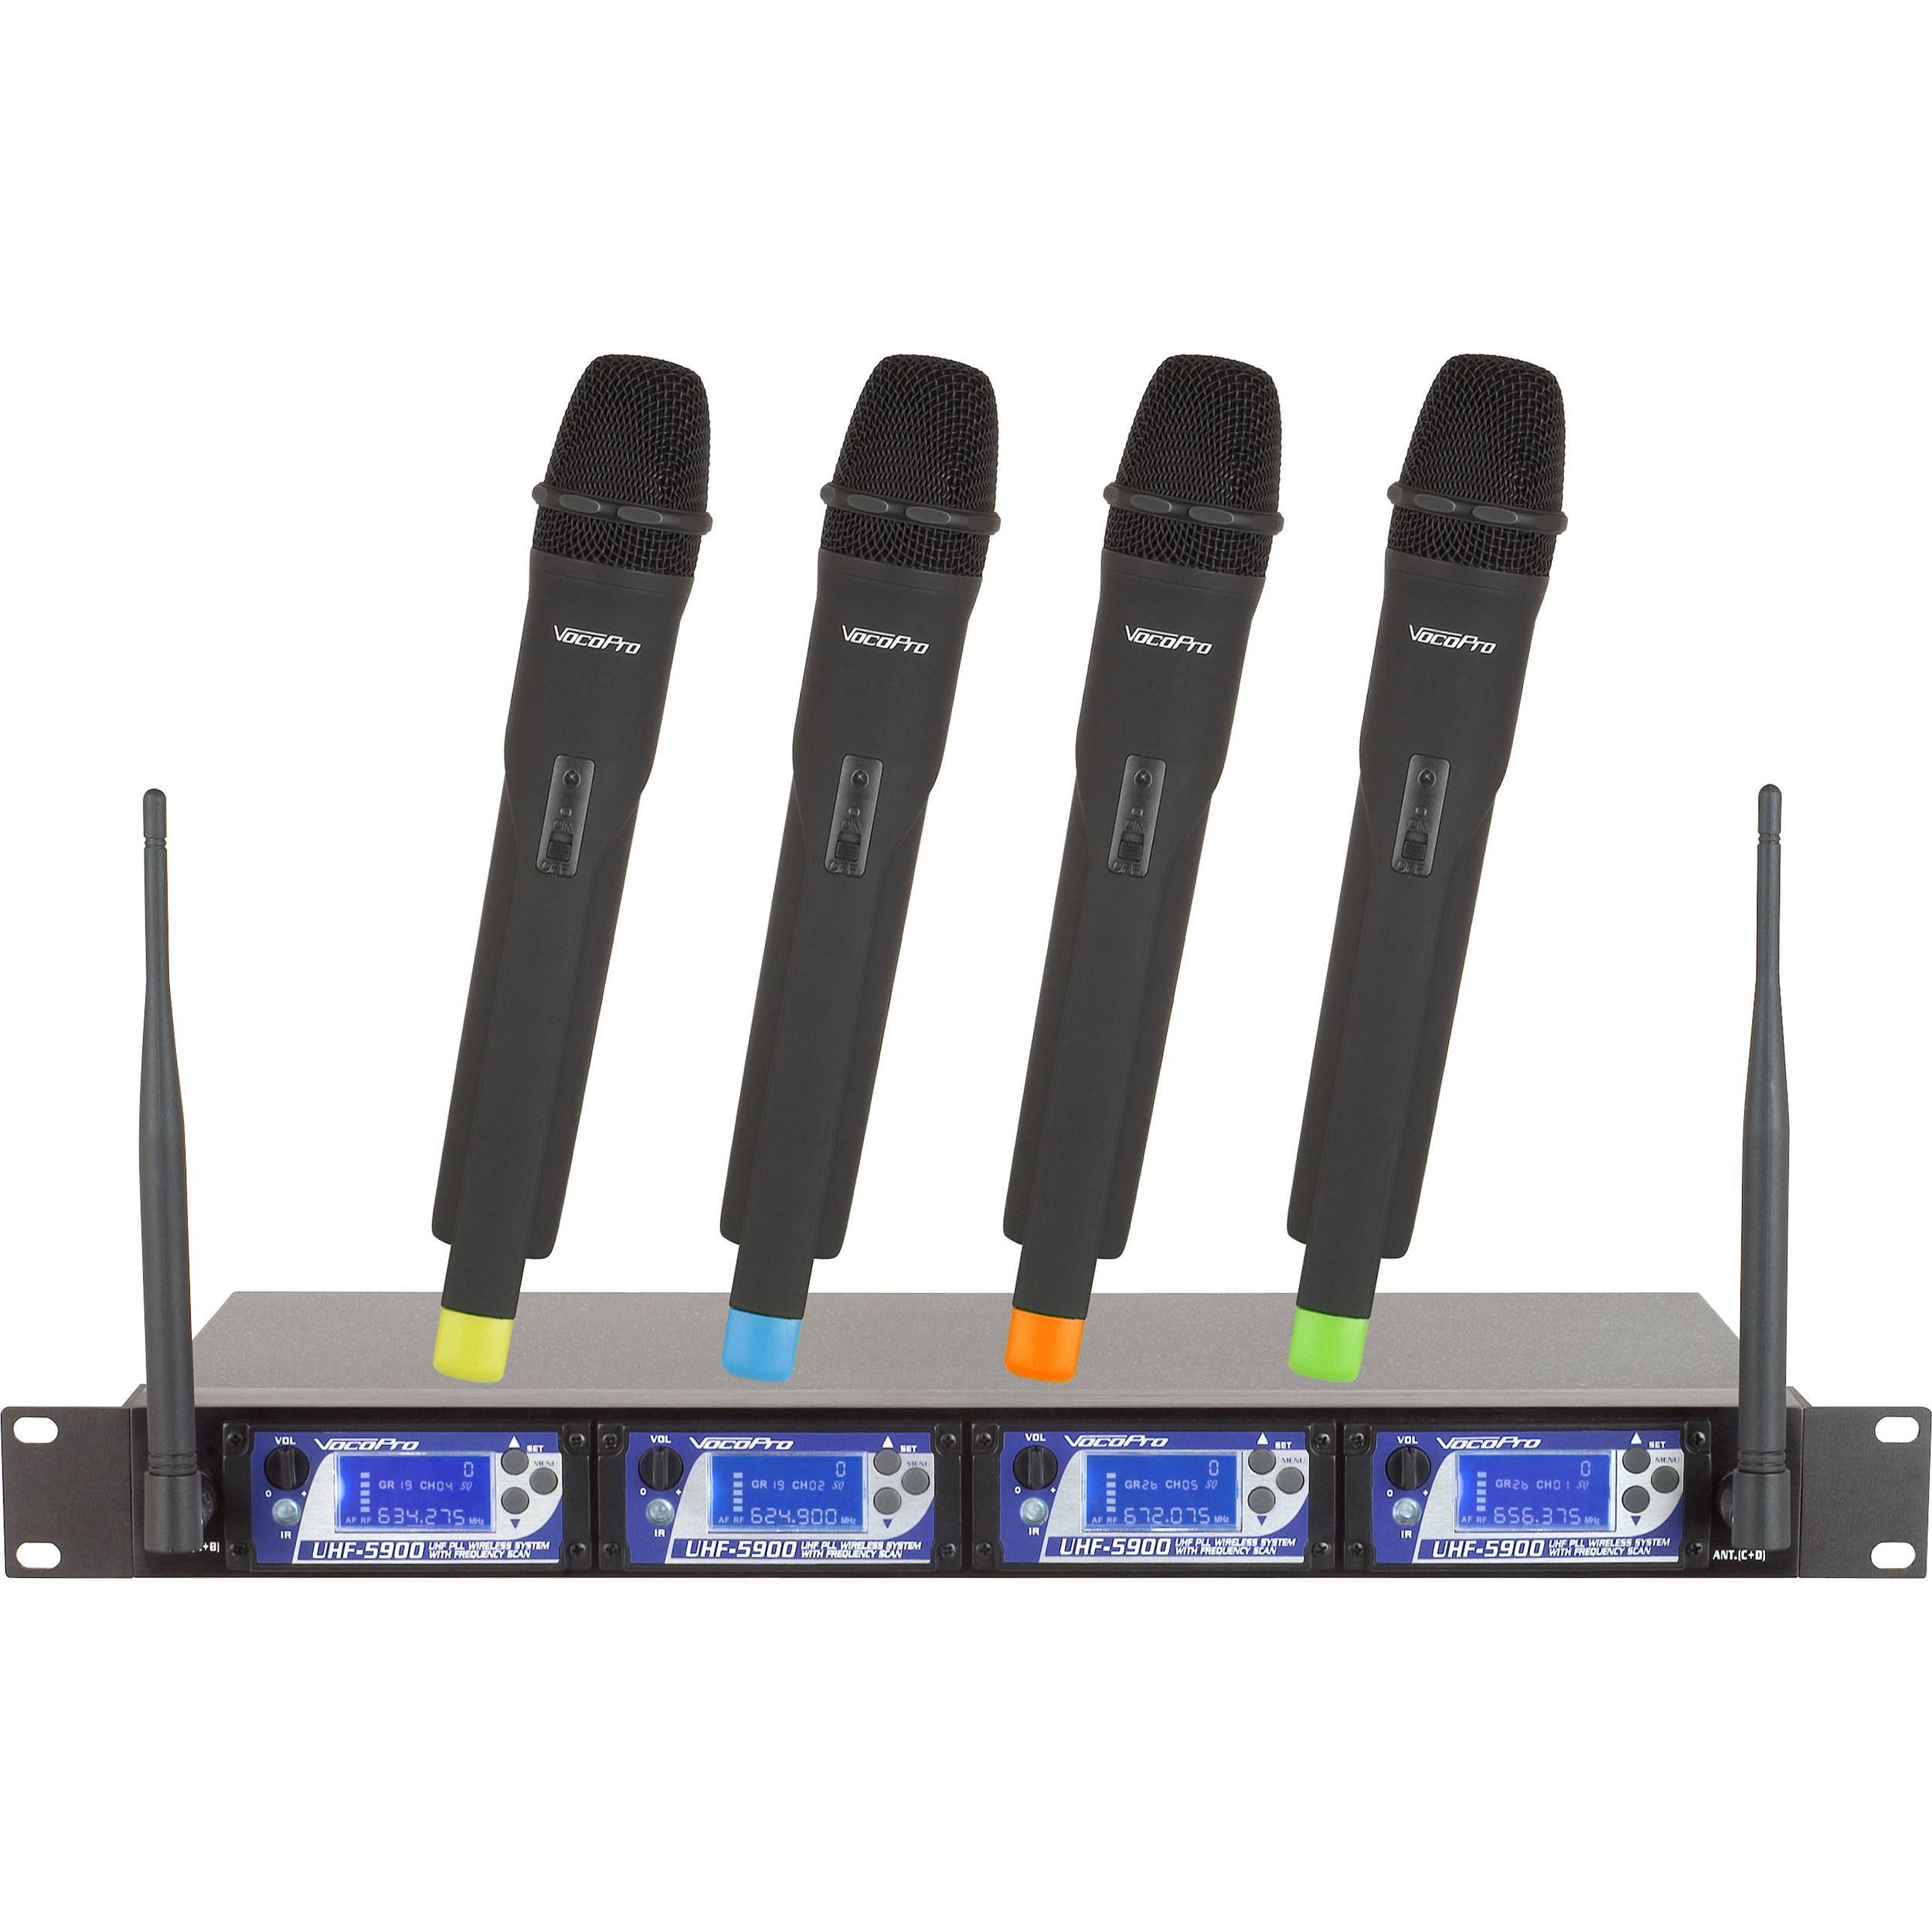 VocoPro UHF 5900 9 4 Channel PLL Wireless Mic System With Frequency Scan 900 MHz